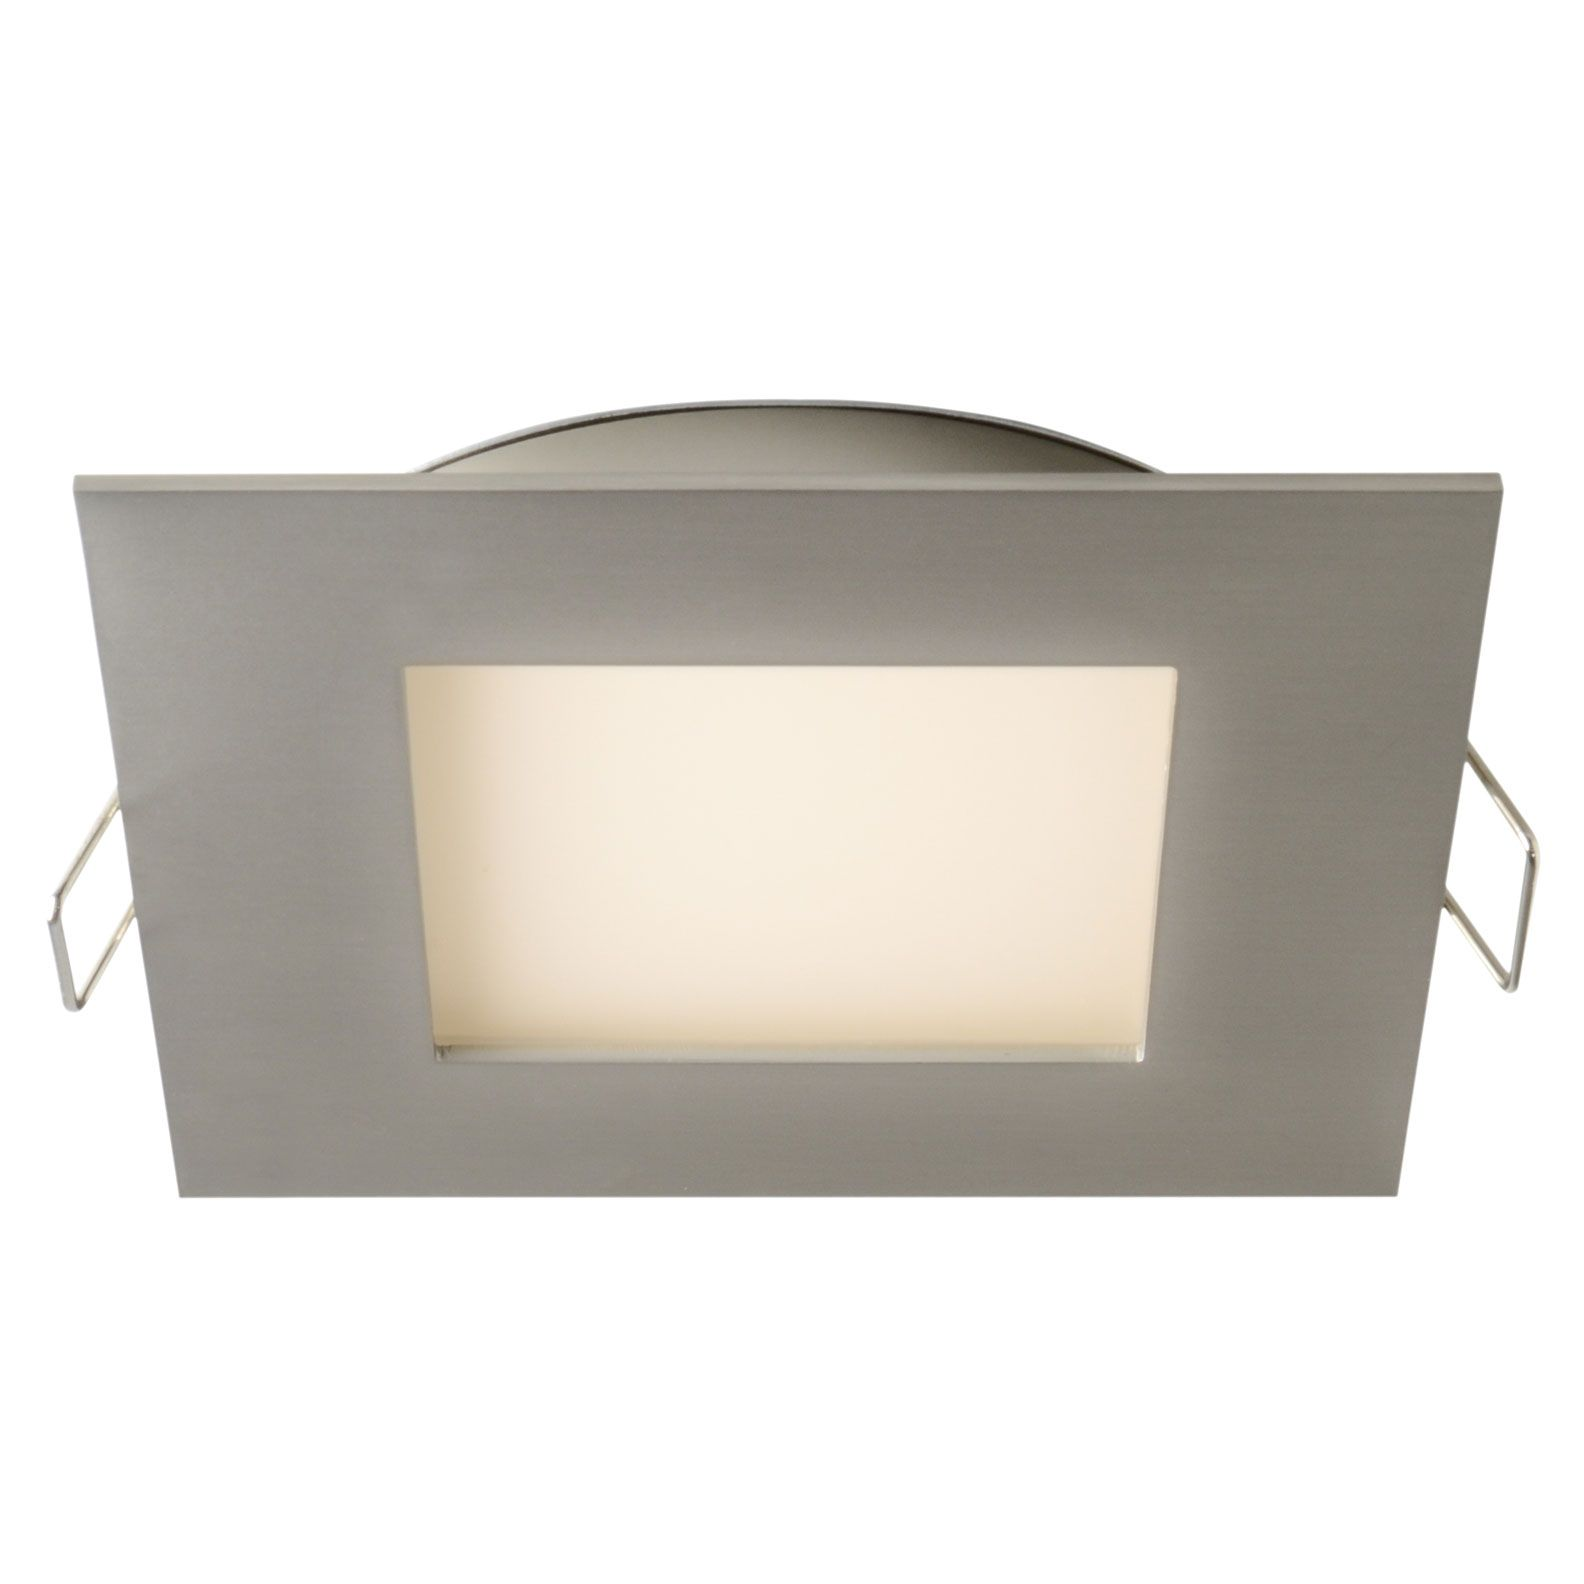 Pro Series 4 Inch Square Recessed Panel Light By Dals Lighting 7004 Sq Sn Lighting Light Recessed Ceiling